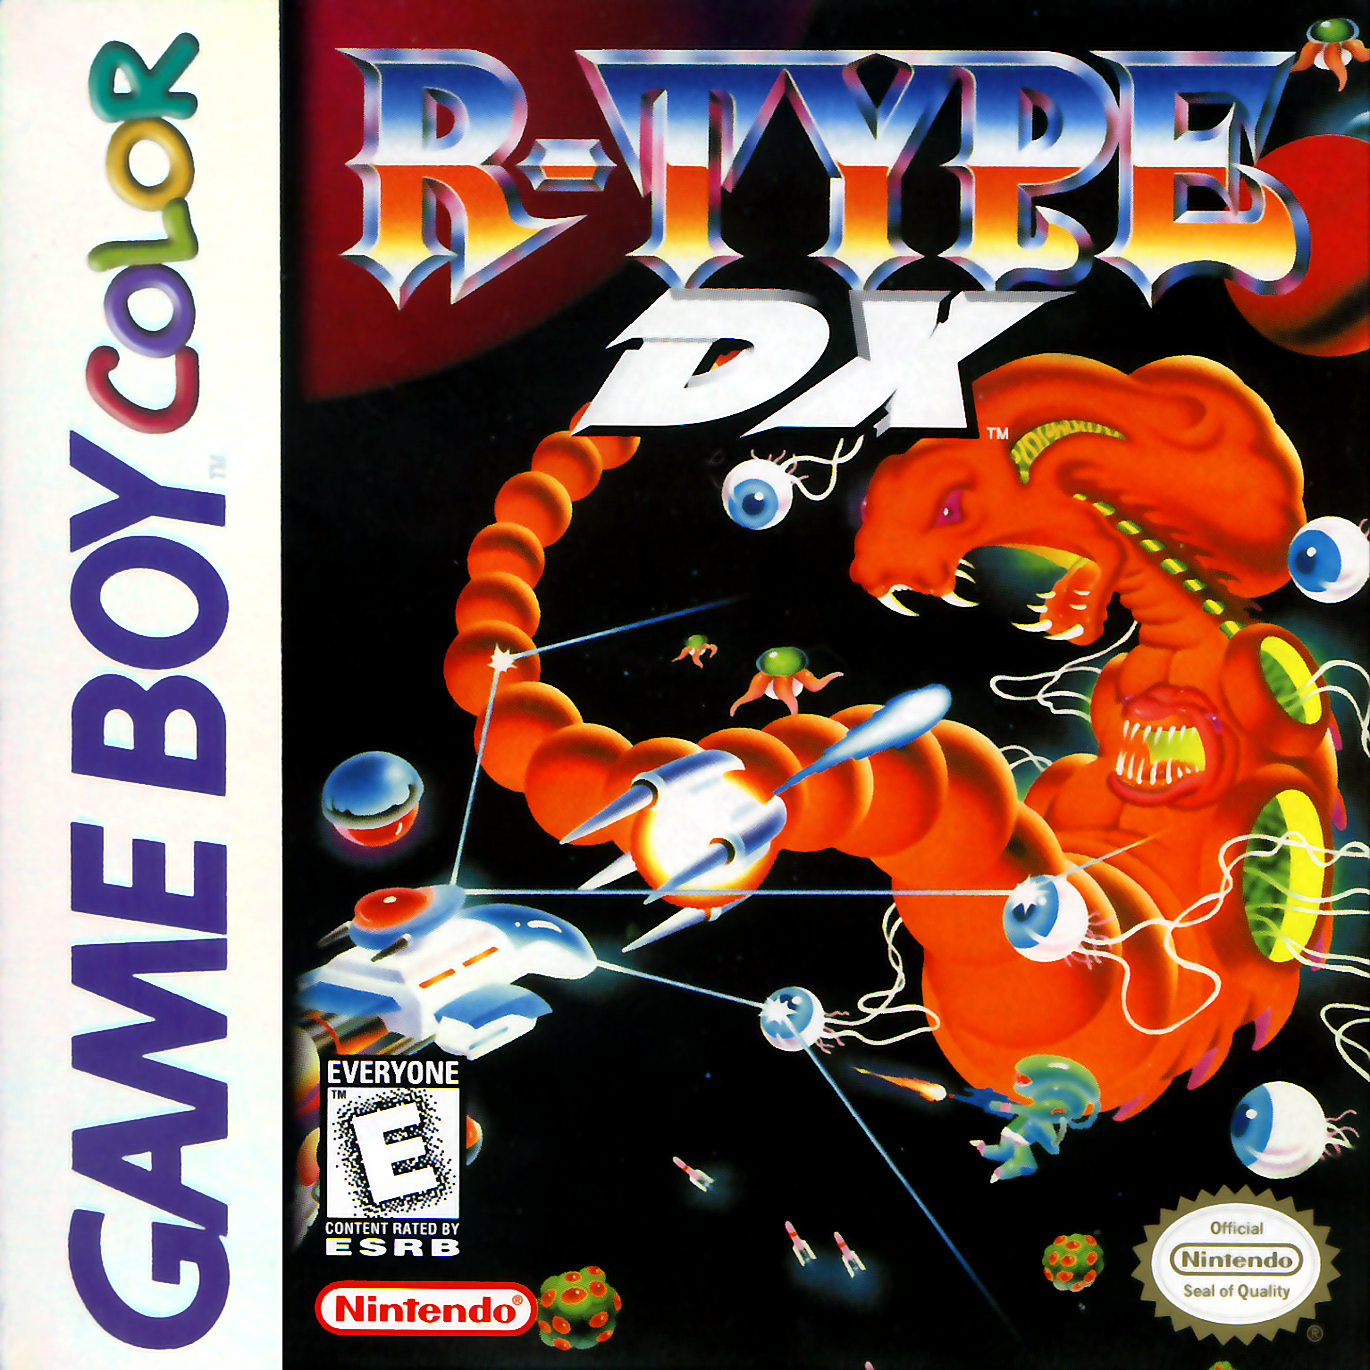 Game boy color online games - Play R Type Dx Nintendo Game Boy Color Online